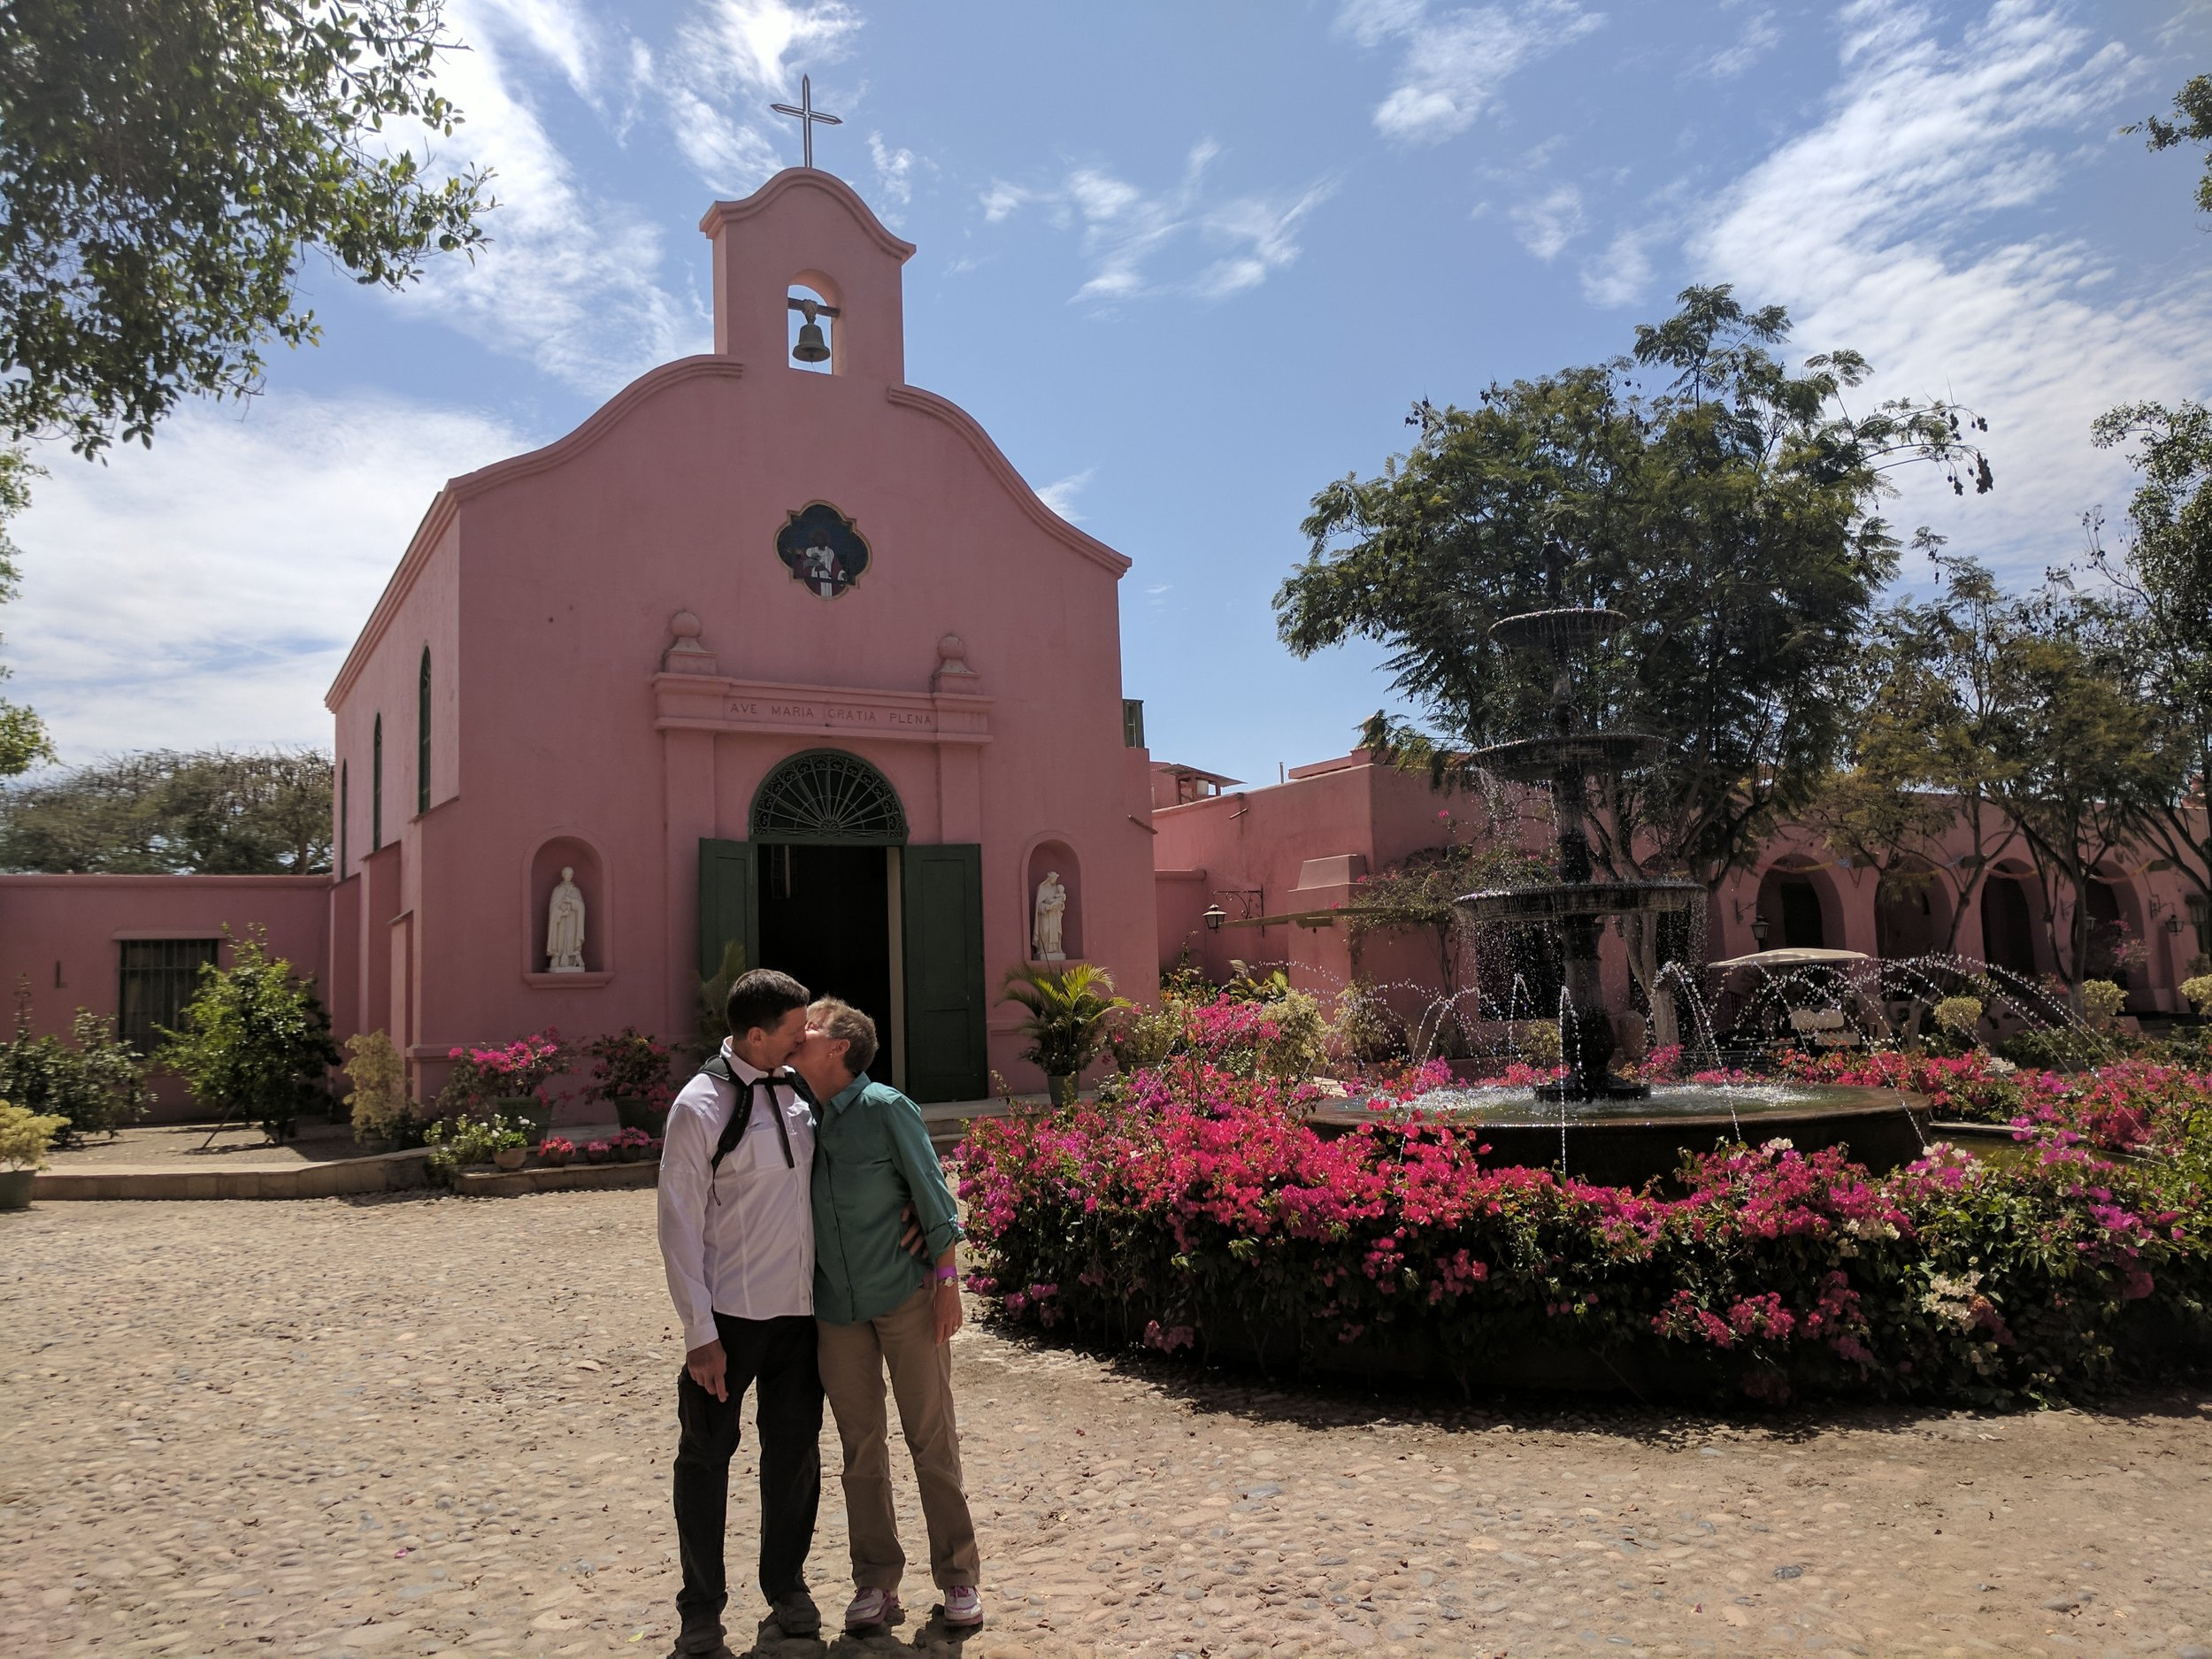 In the courtyard of Tacama, the winery outside of Arequipa